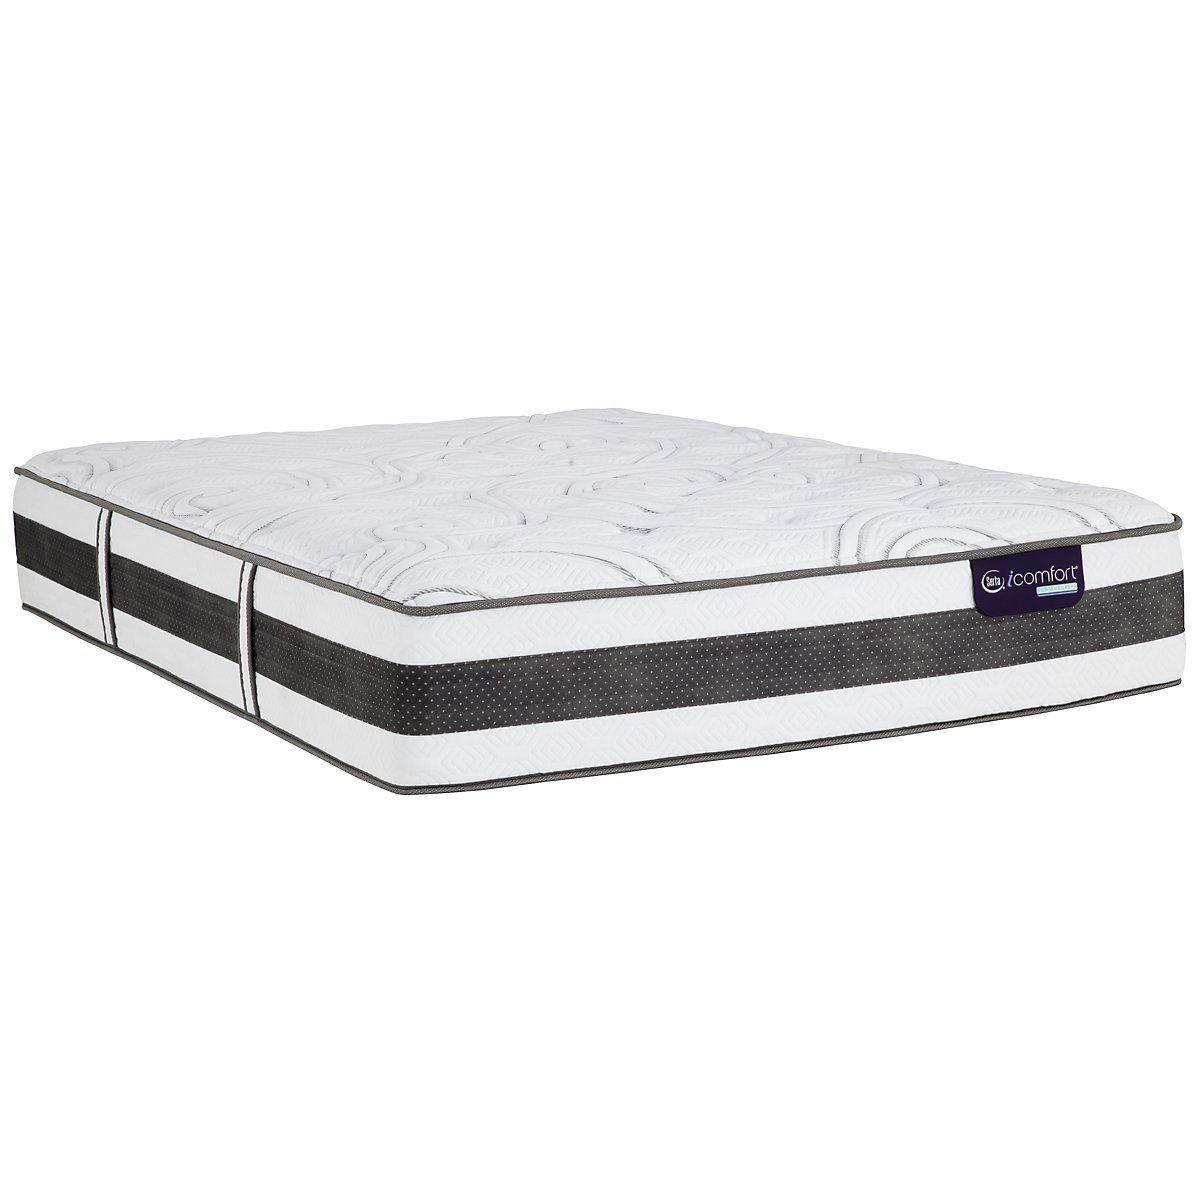 Serta iComfort Recognition Plush Hybrid Mattress